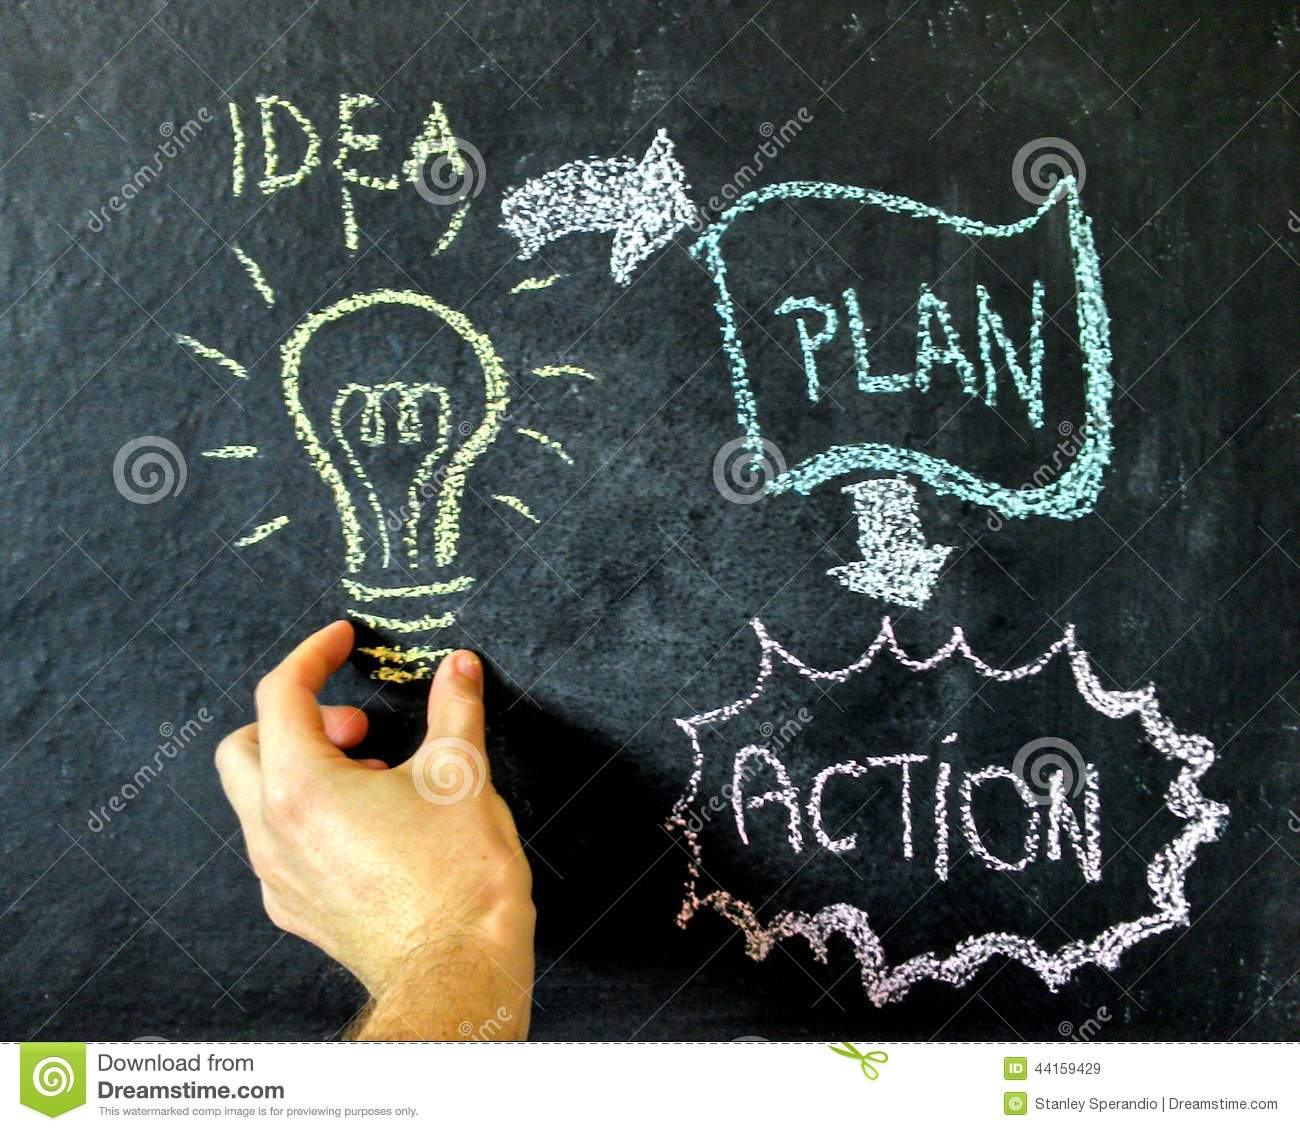 Ideas Plans For Your Garage: Idea Plan Action Stock Image. Image Of Drawing, Plan